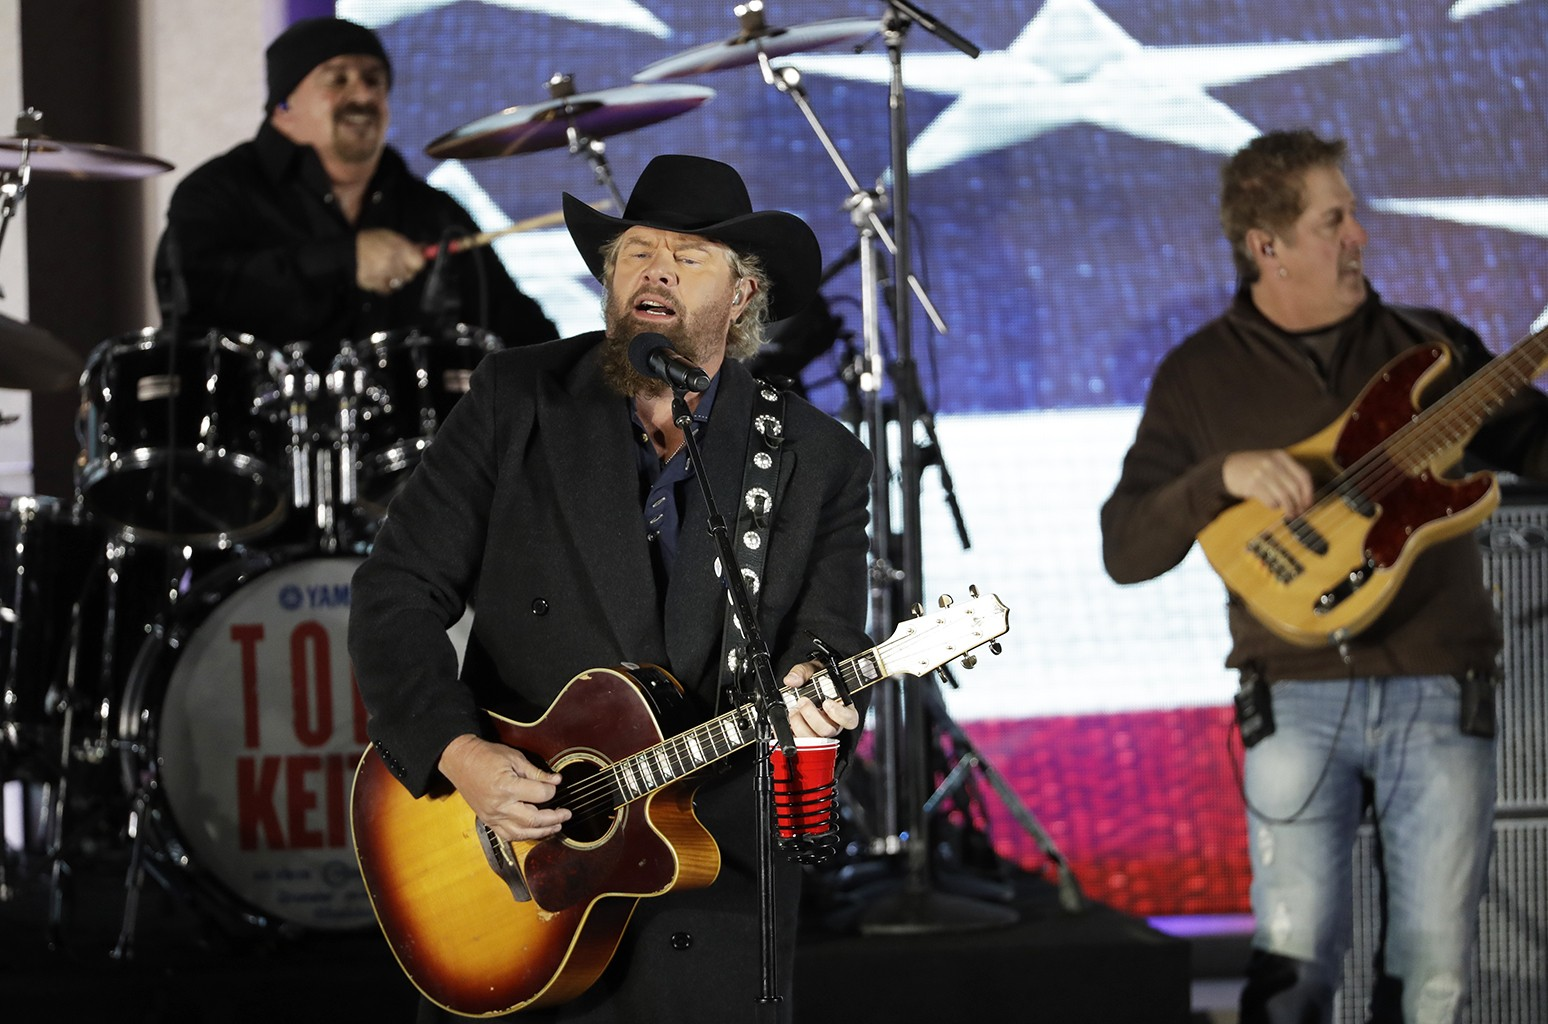 """Toby Keith performs at a pre-Inaugural """"Make America Great Again! Welcome Celebration"""" at the Lincoln Memorial in Washington, DC on Jan. 19, 2017. (AP Photo/David J. Phillip)"""